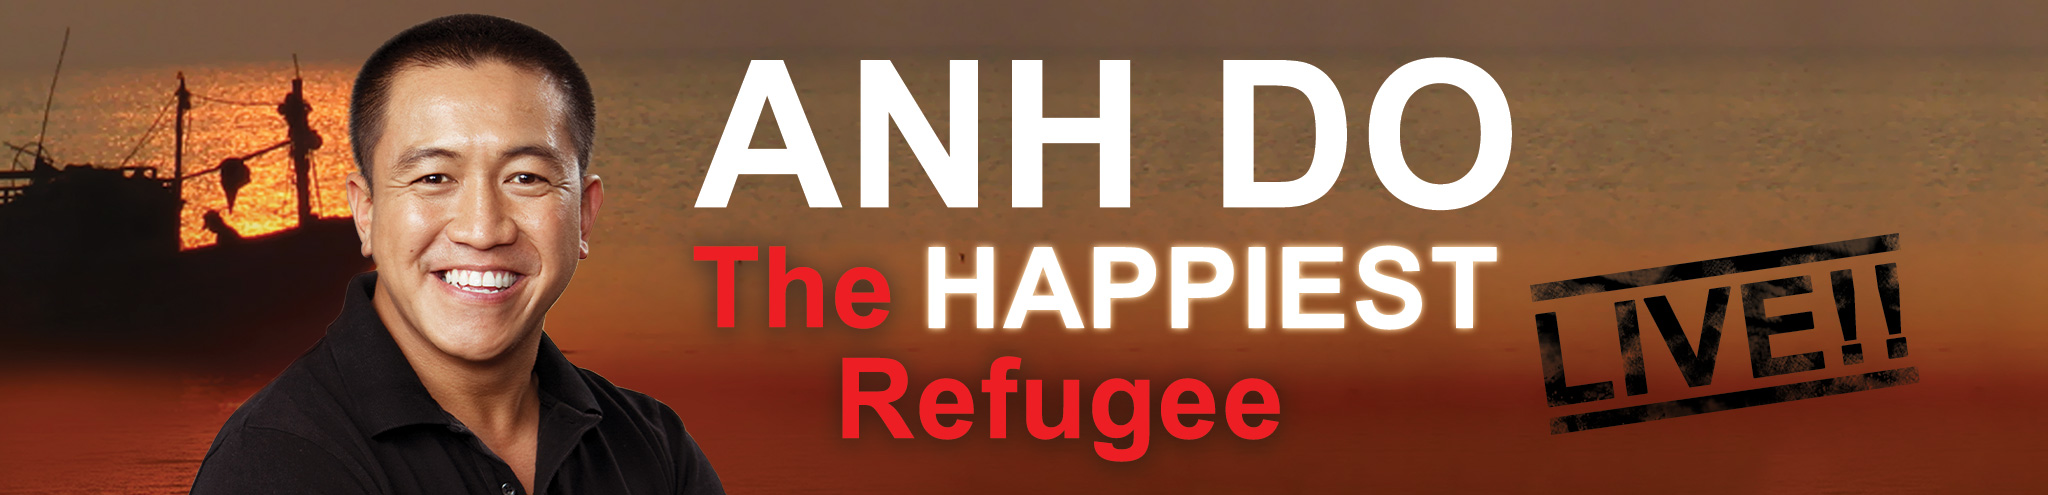 And Do - The Happiest Refugee Live!!